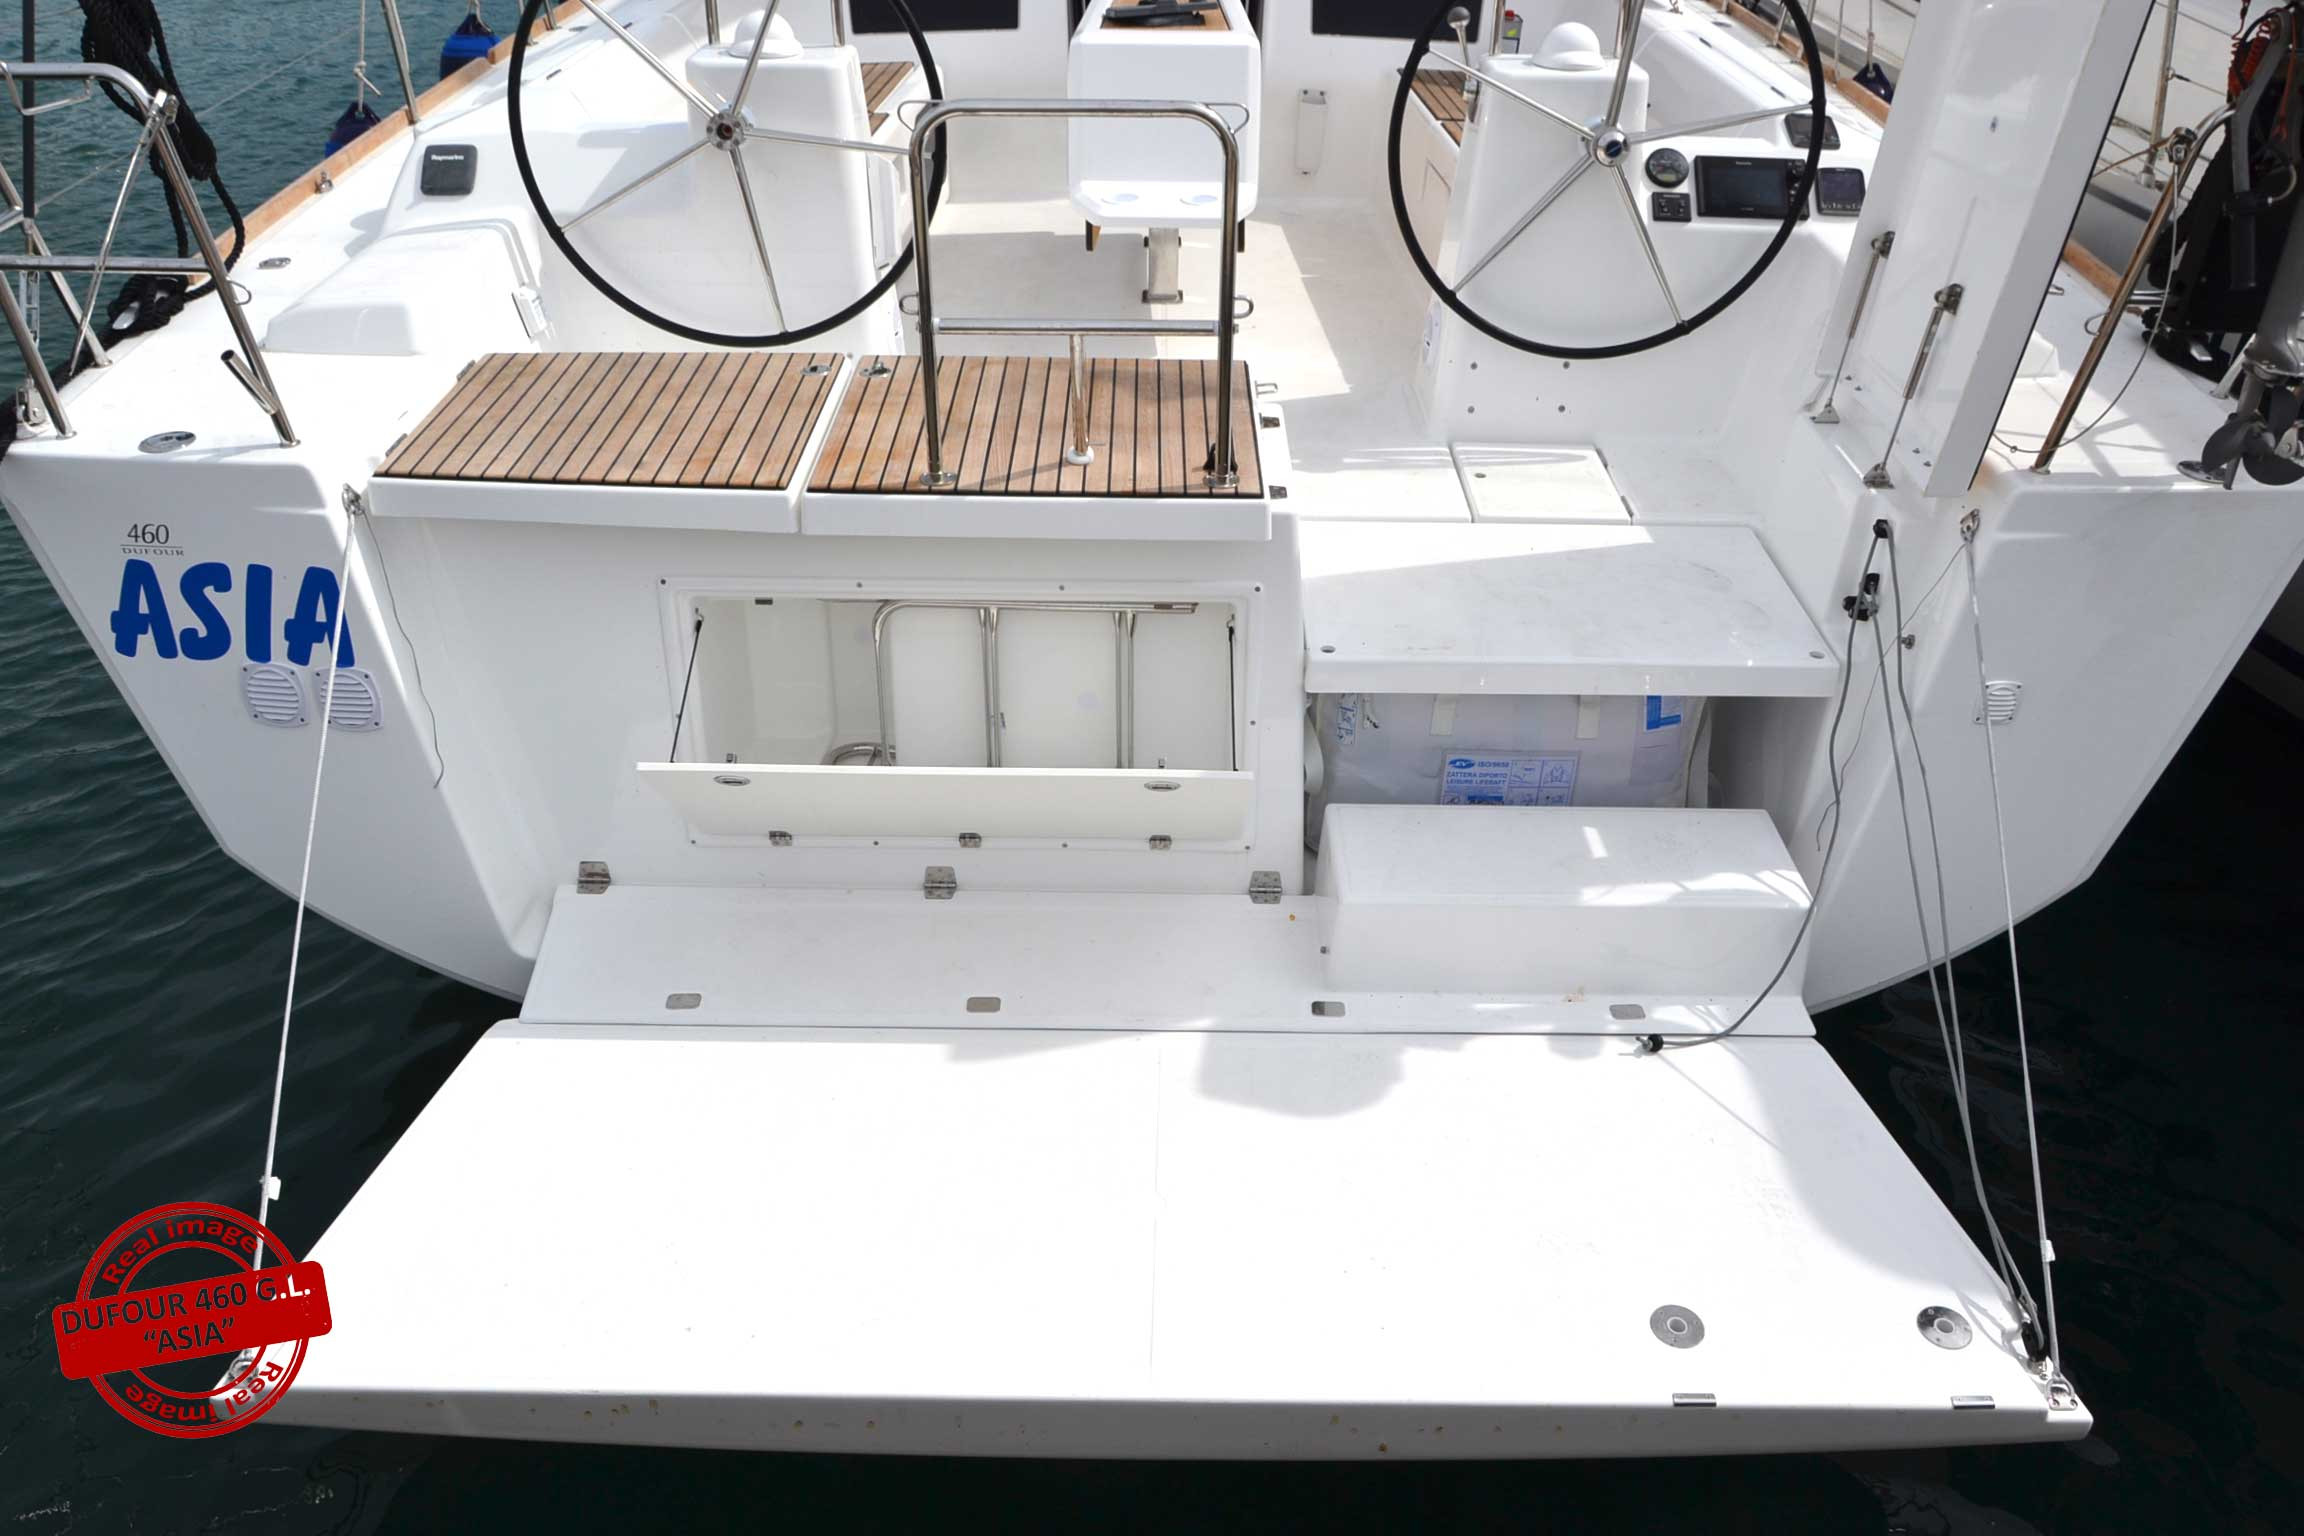 Dufour 460 Grand Large (Asia)  - 15